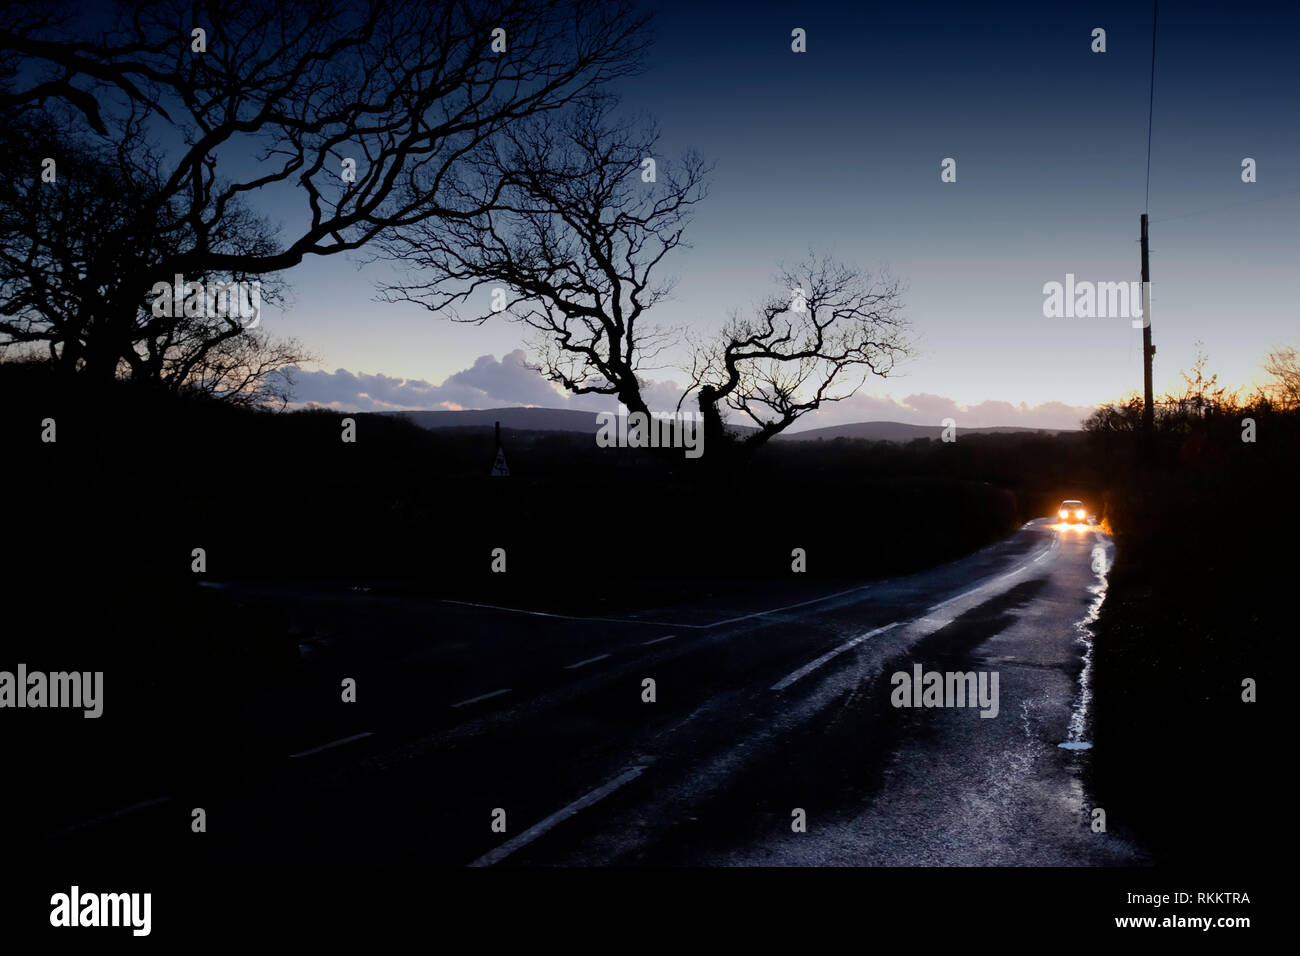 Car driving fast along country road at dusk, night, on wet road, after rain storm, headlights on, bright, slippery road conditions, rural driving. - Stock Image